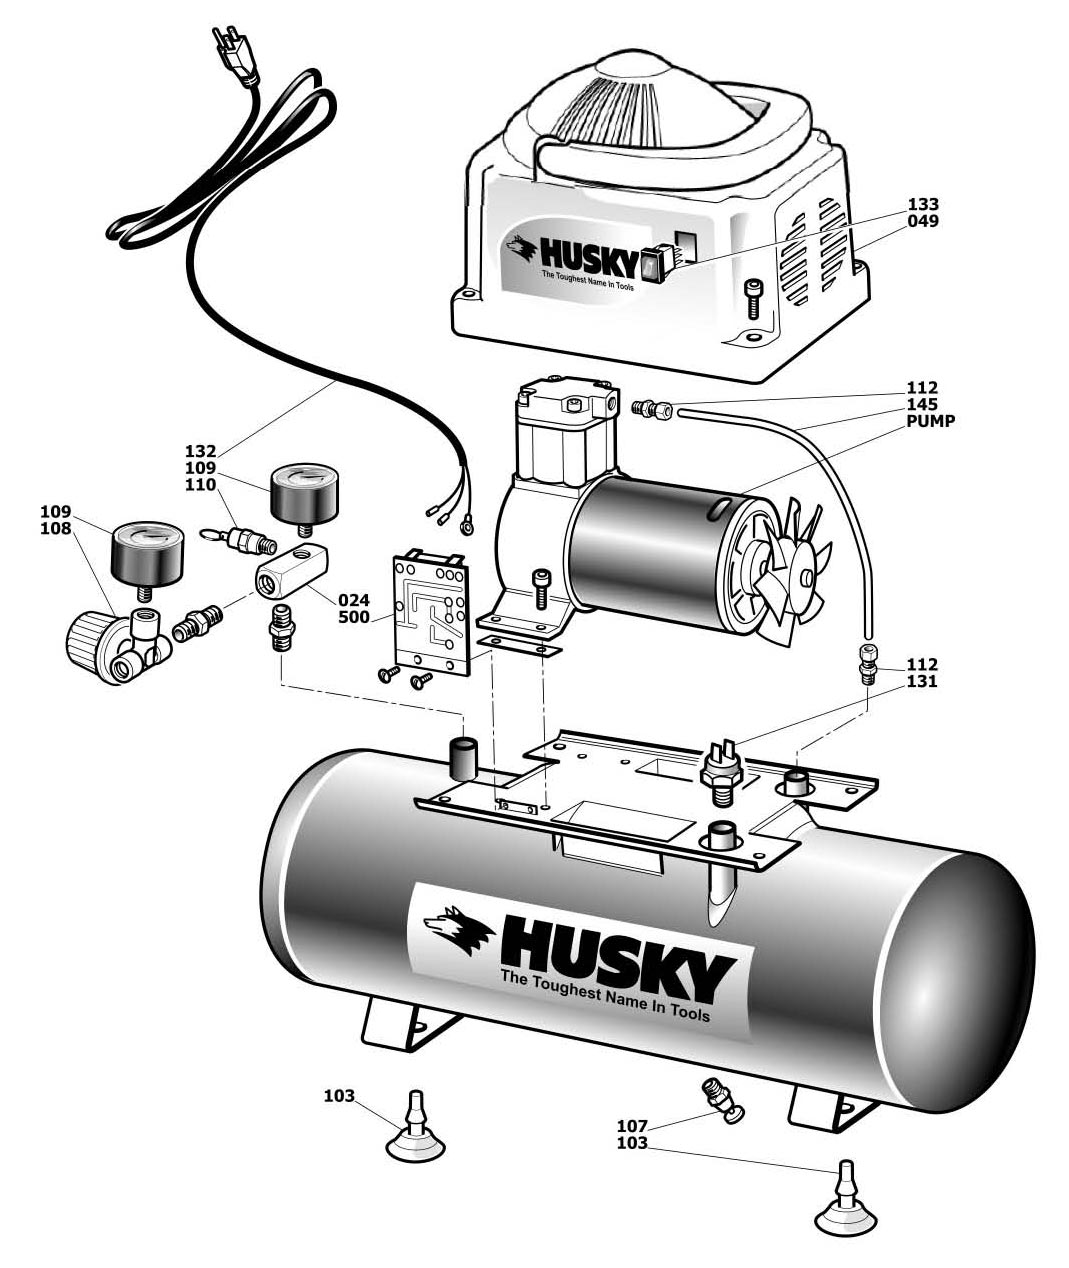 HHD2NK_parts husky parts hhd2nk, 948 682 air compressor husky air compressor wiring diagram at edmiracle.co